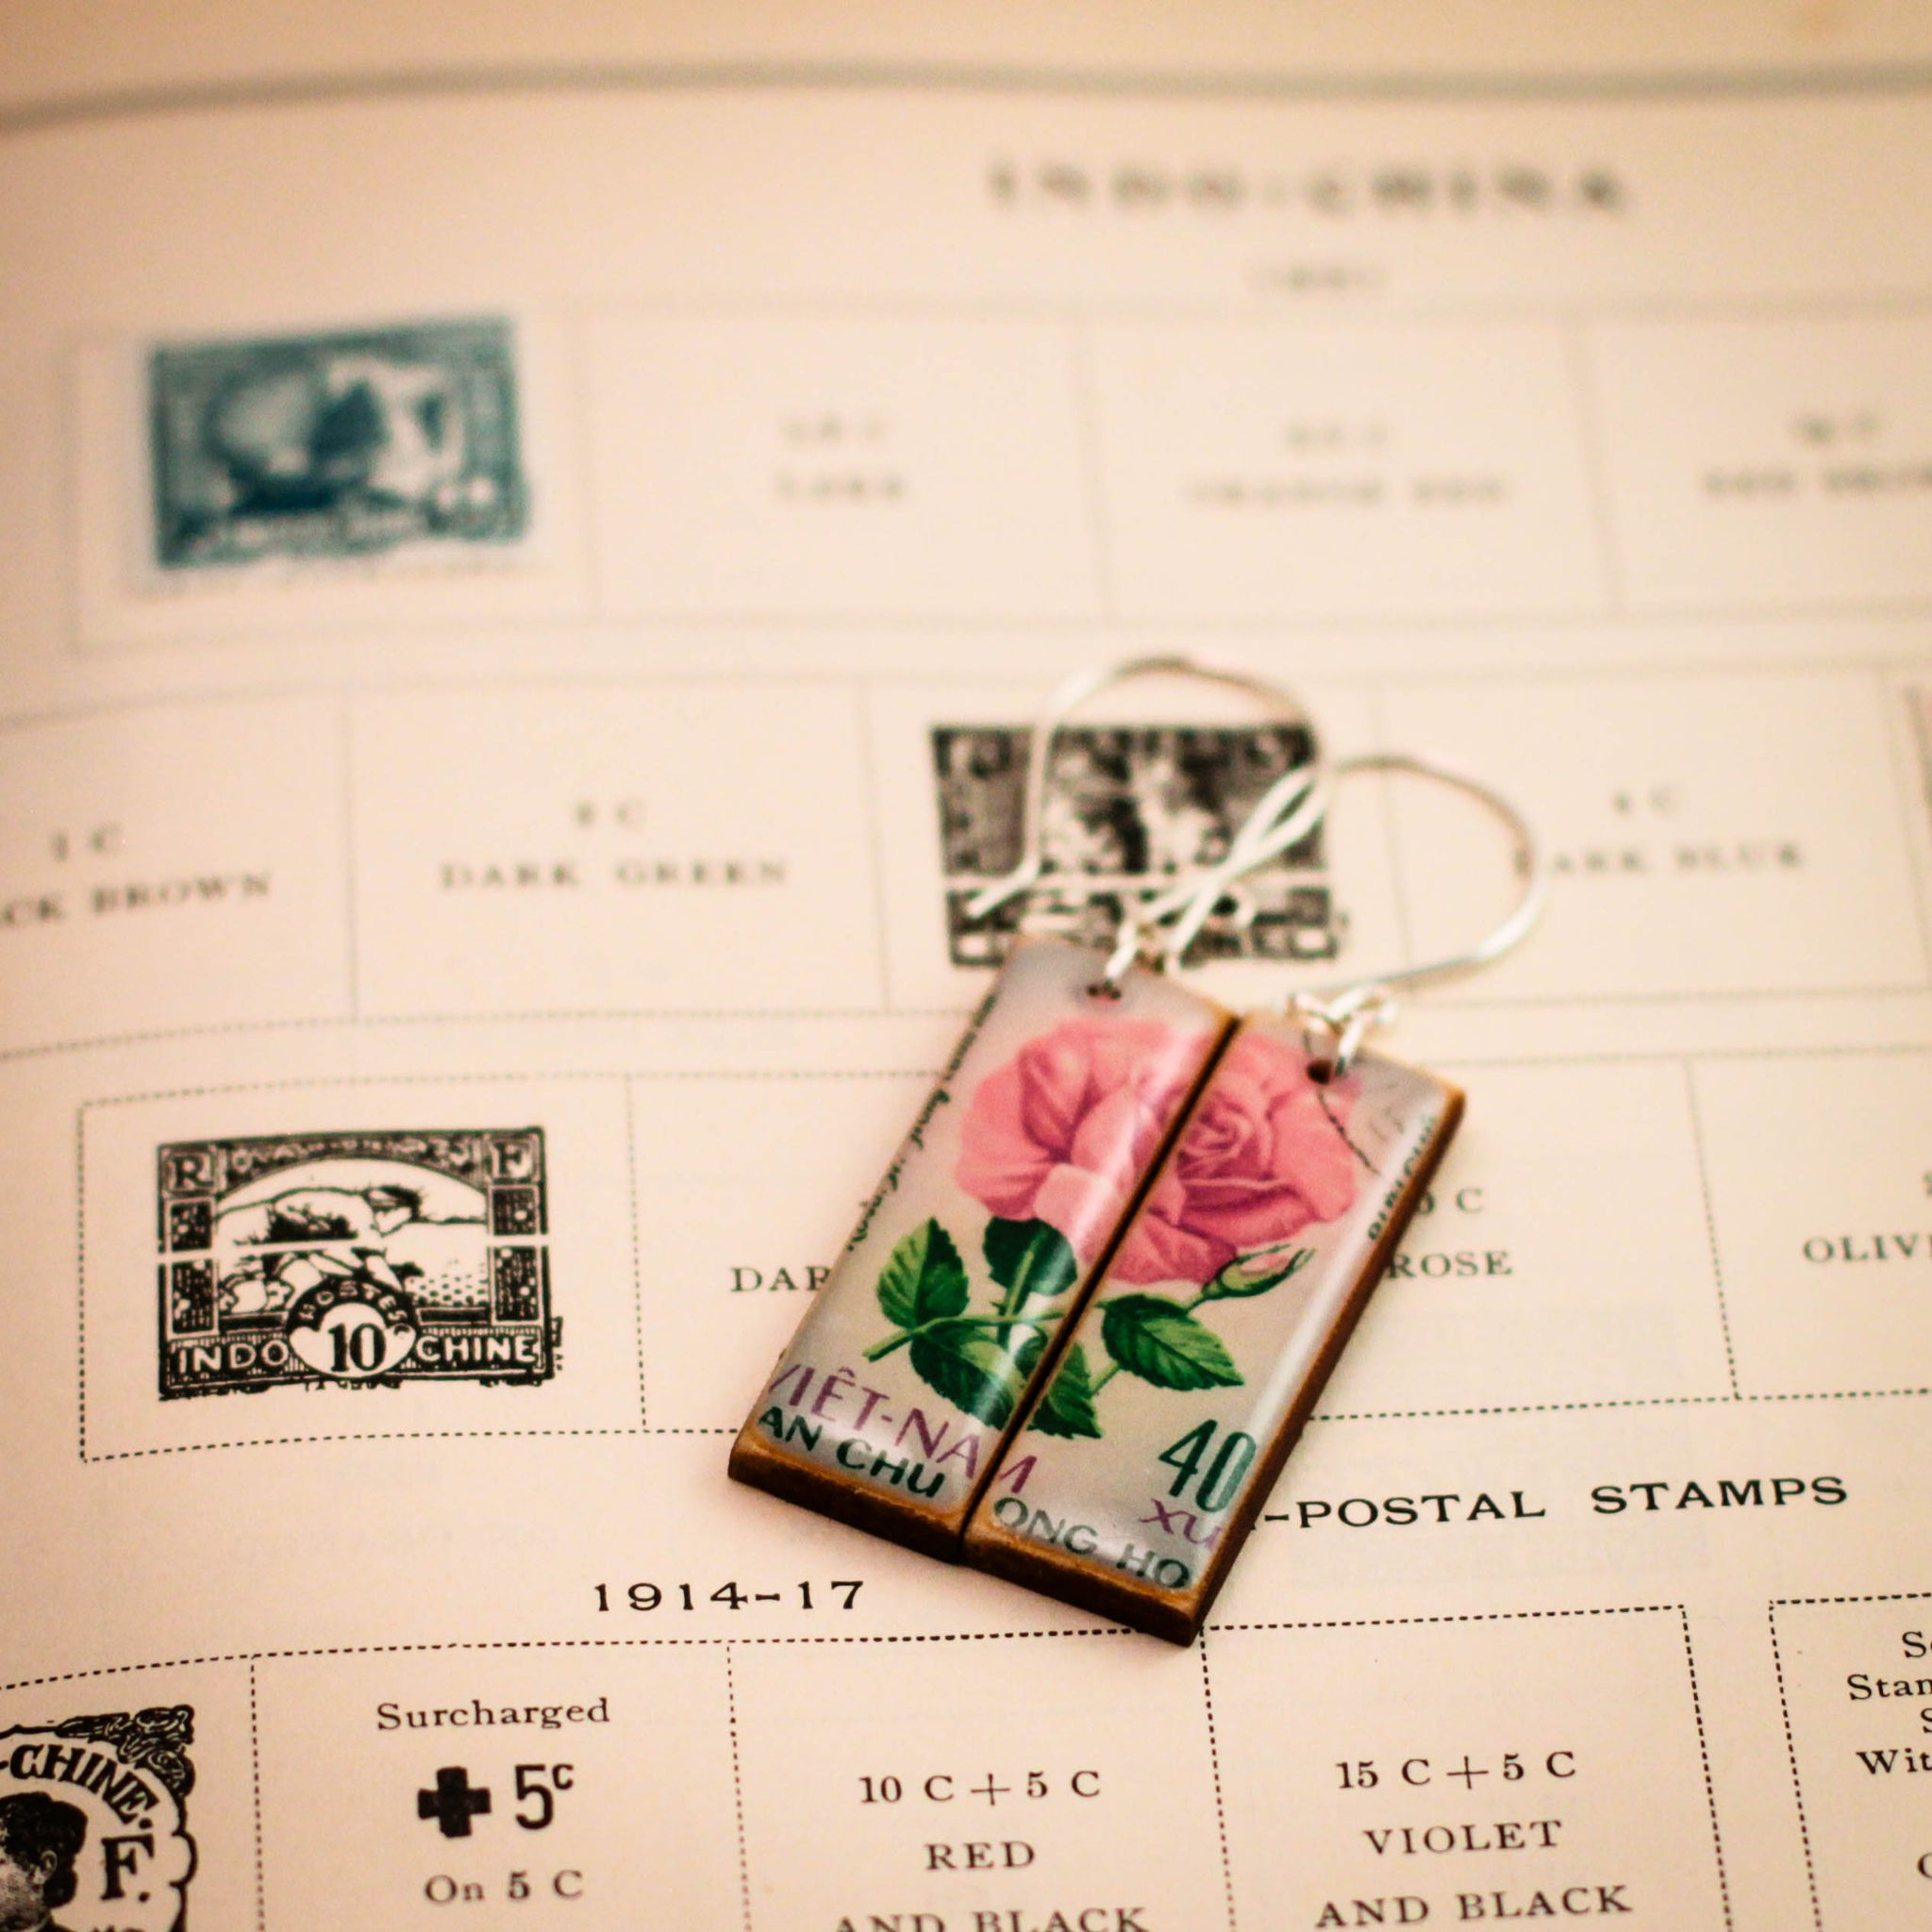 VIETNAM- Vintage Postage Stamp Rose Earrings